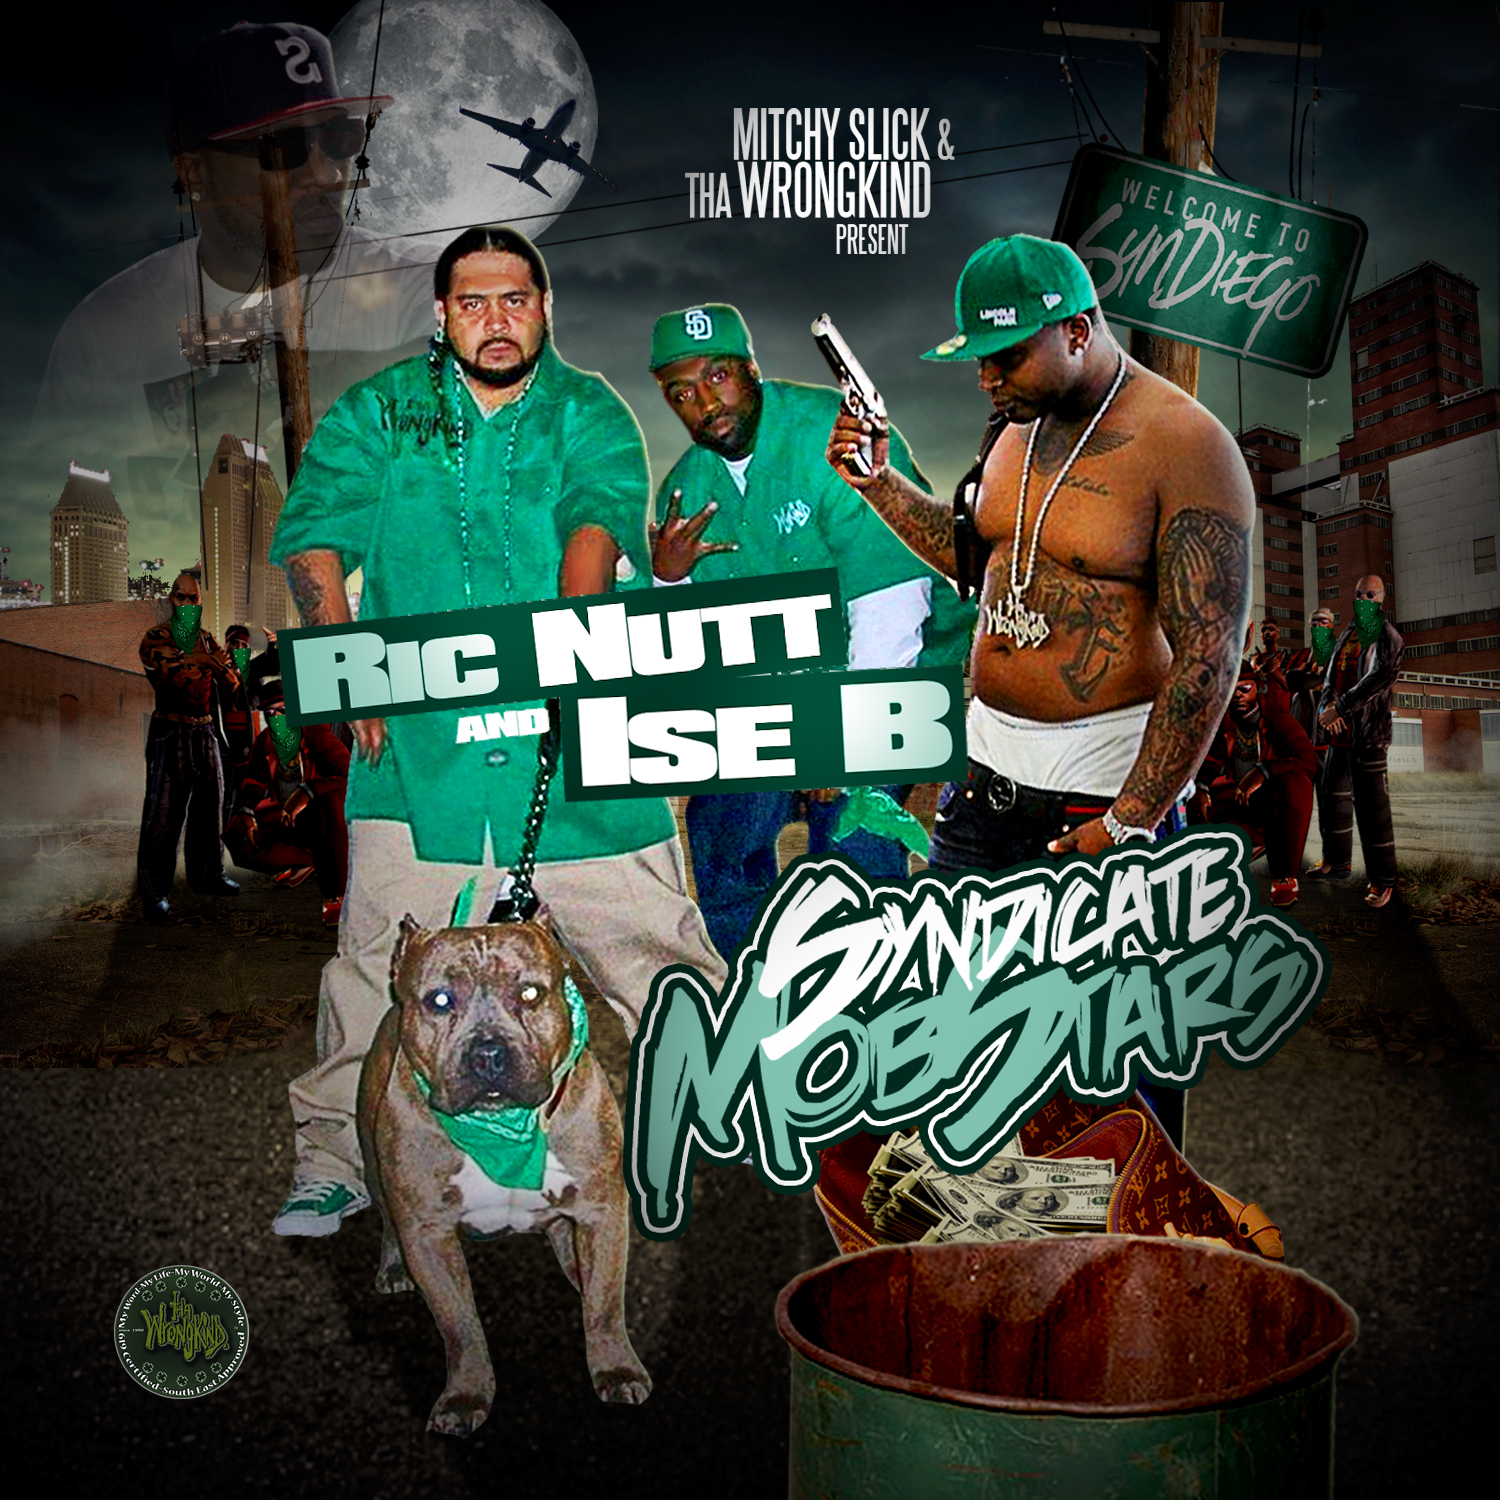 Mitchy Slick & Tha Wrongkind Present Ric Nutt & Ise B - Syndicate Mobstars